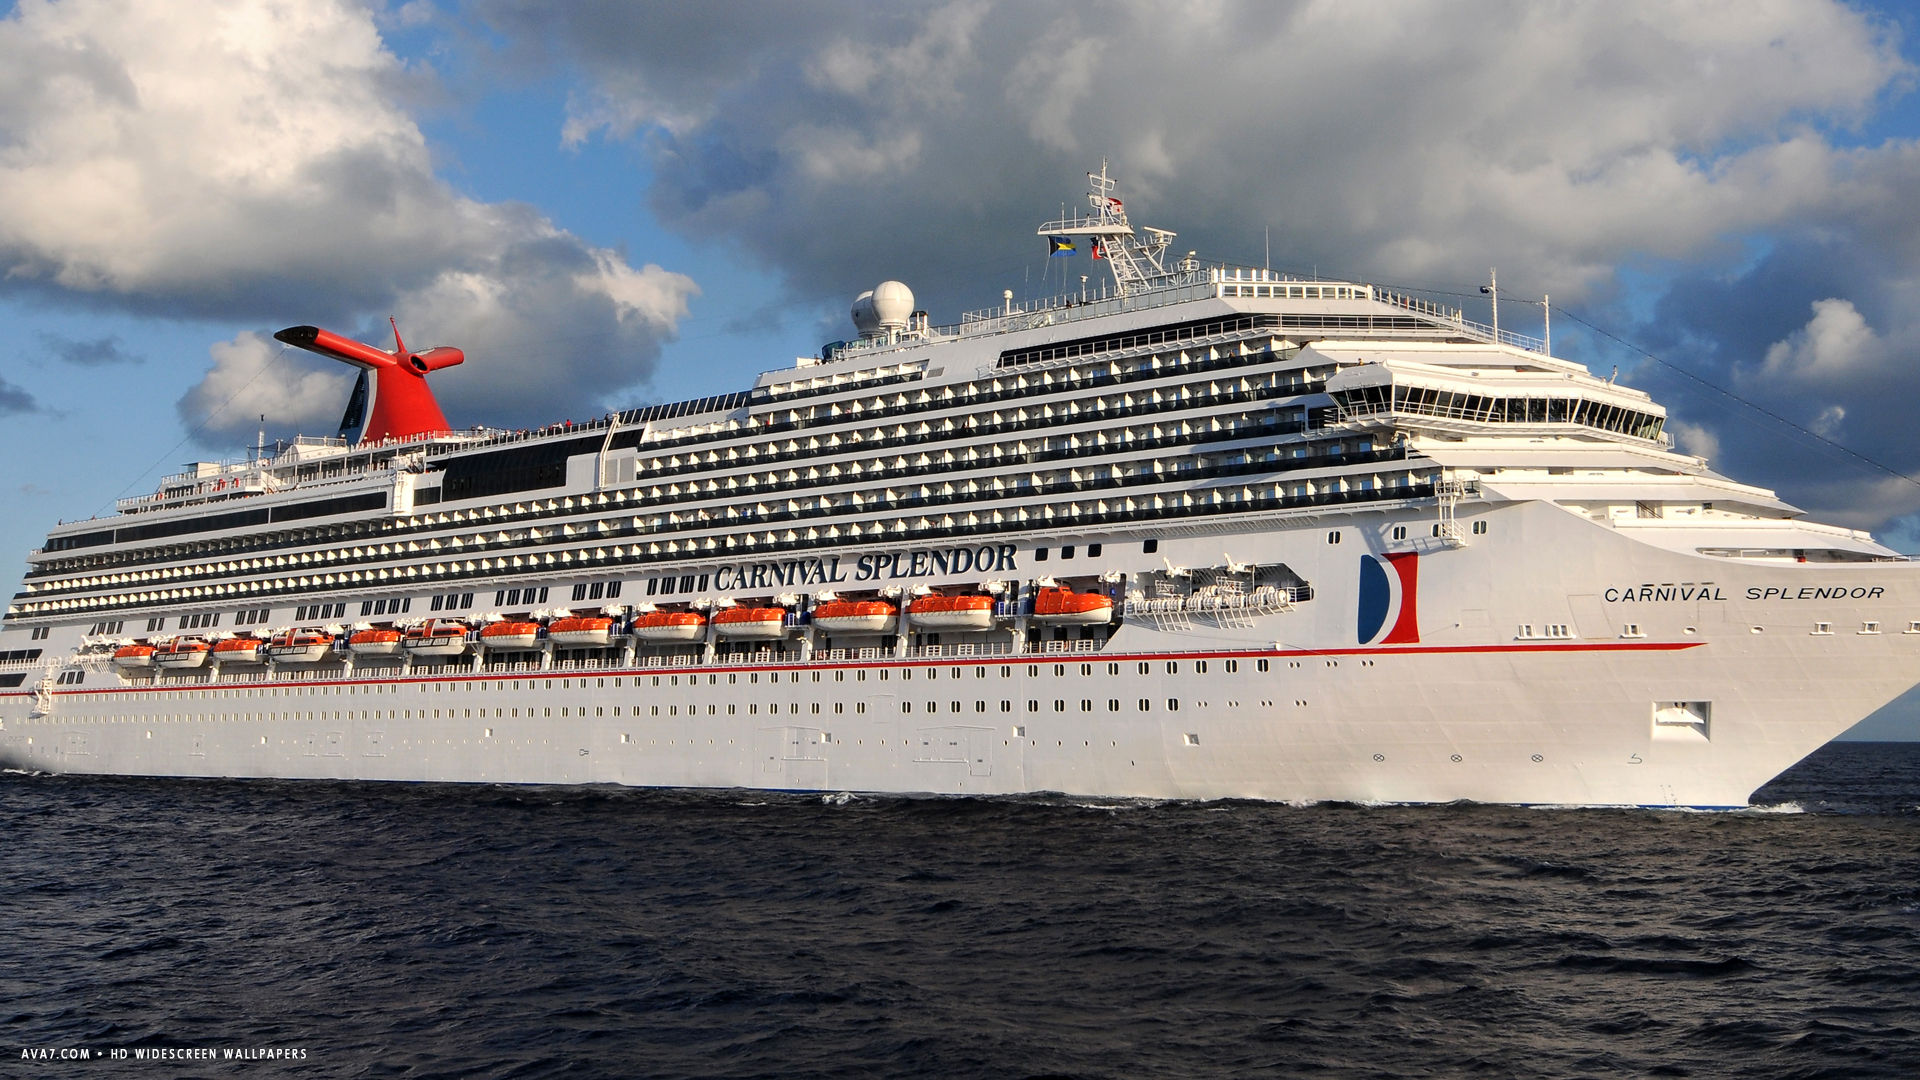 carnival splendor cruise ship hd widescreen wallpaper cruise ships 1920x1080